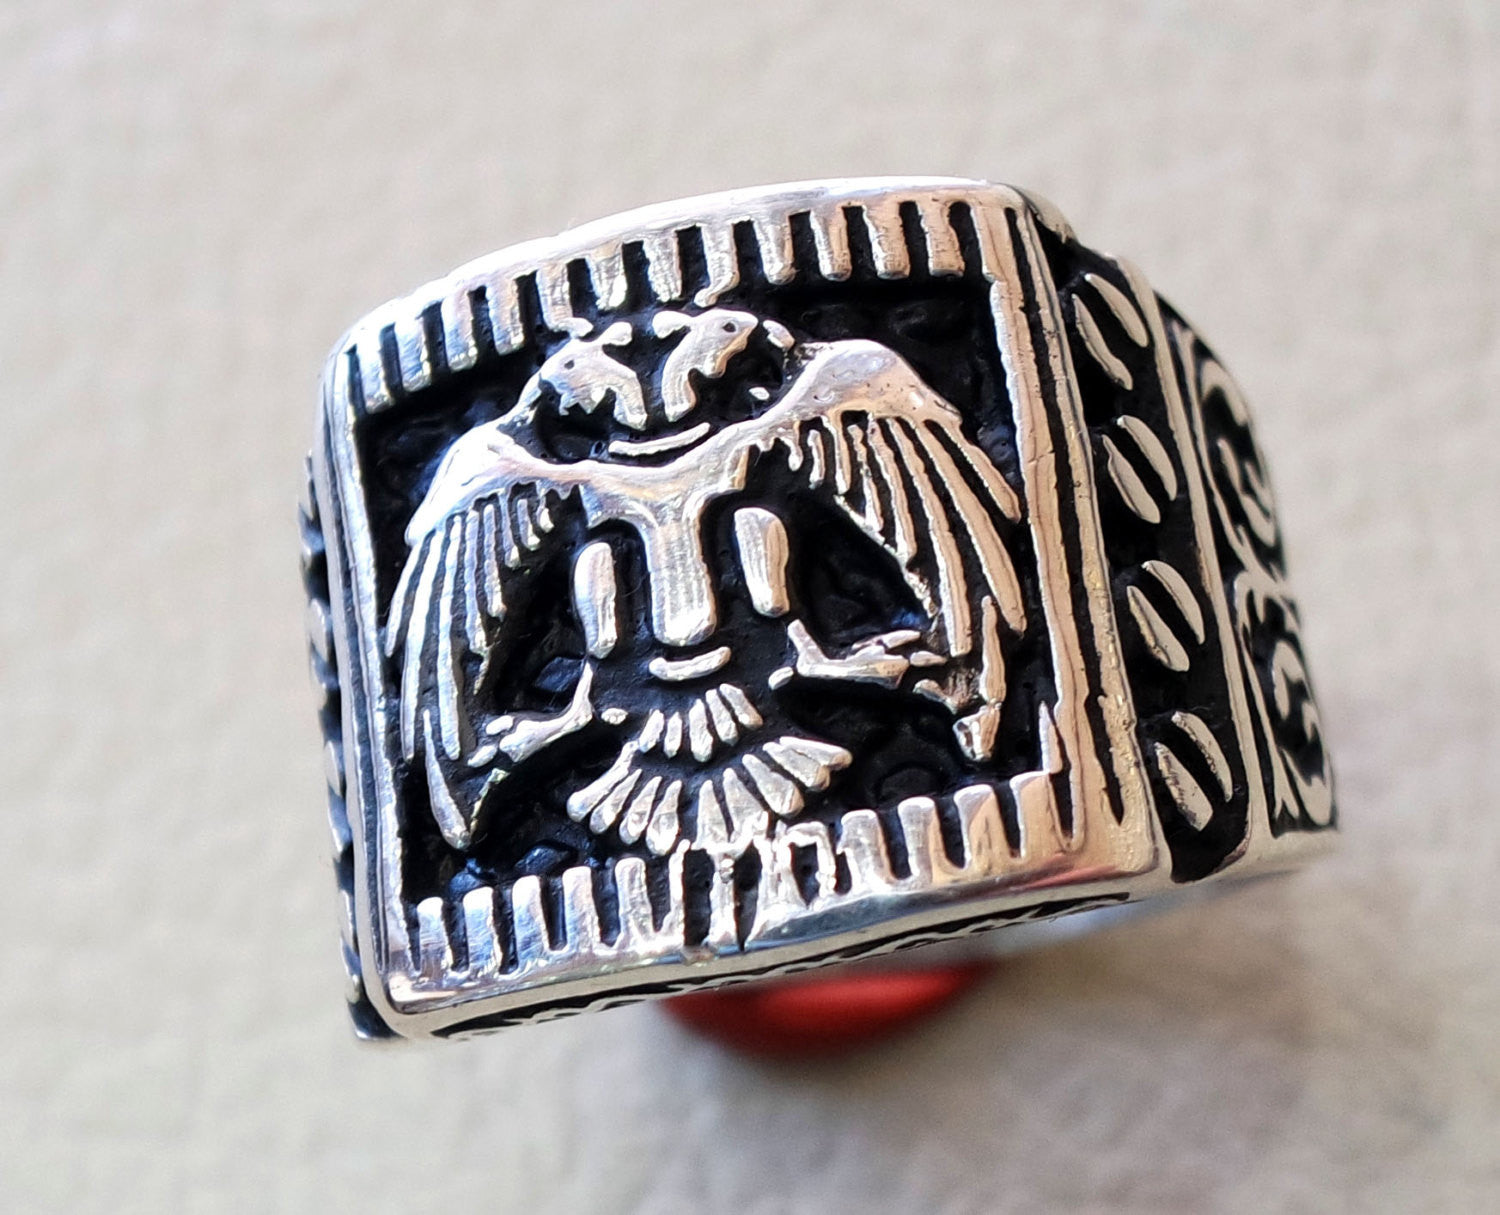 Two headed eagle heavy men ring byzantine roman historical and modern symbol all sizes sterling silver 925 express shipping jewelry